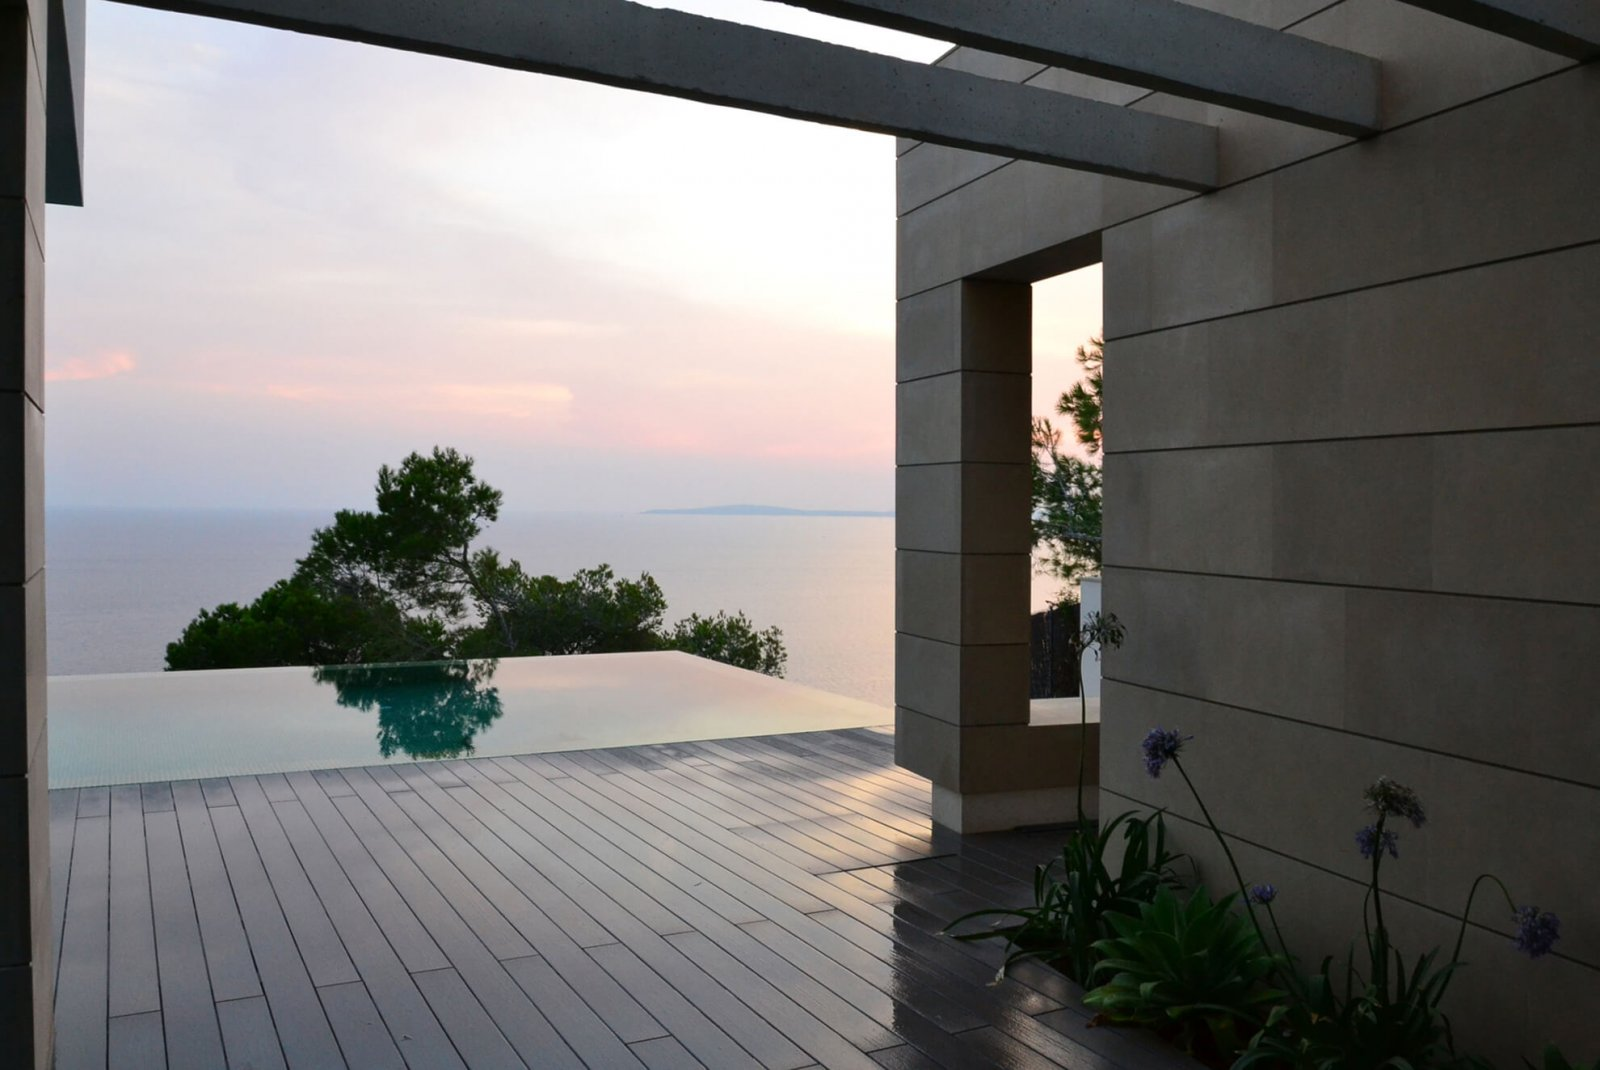 View of the infinity pool with the sea in the background